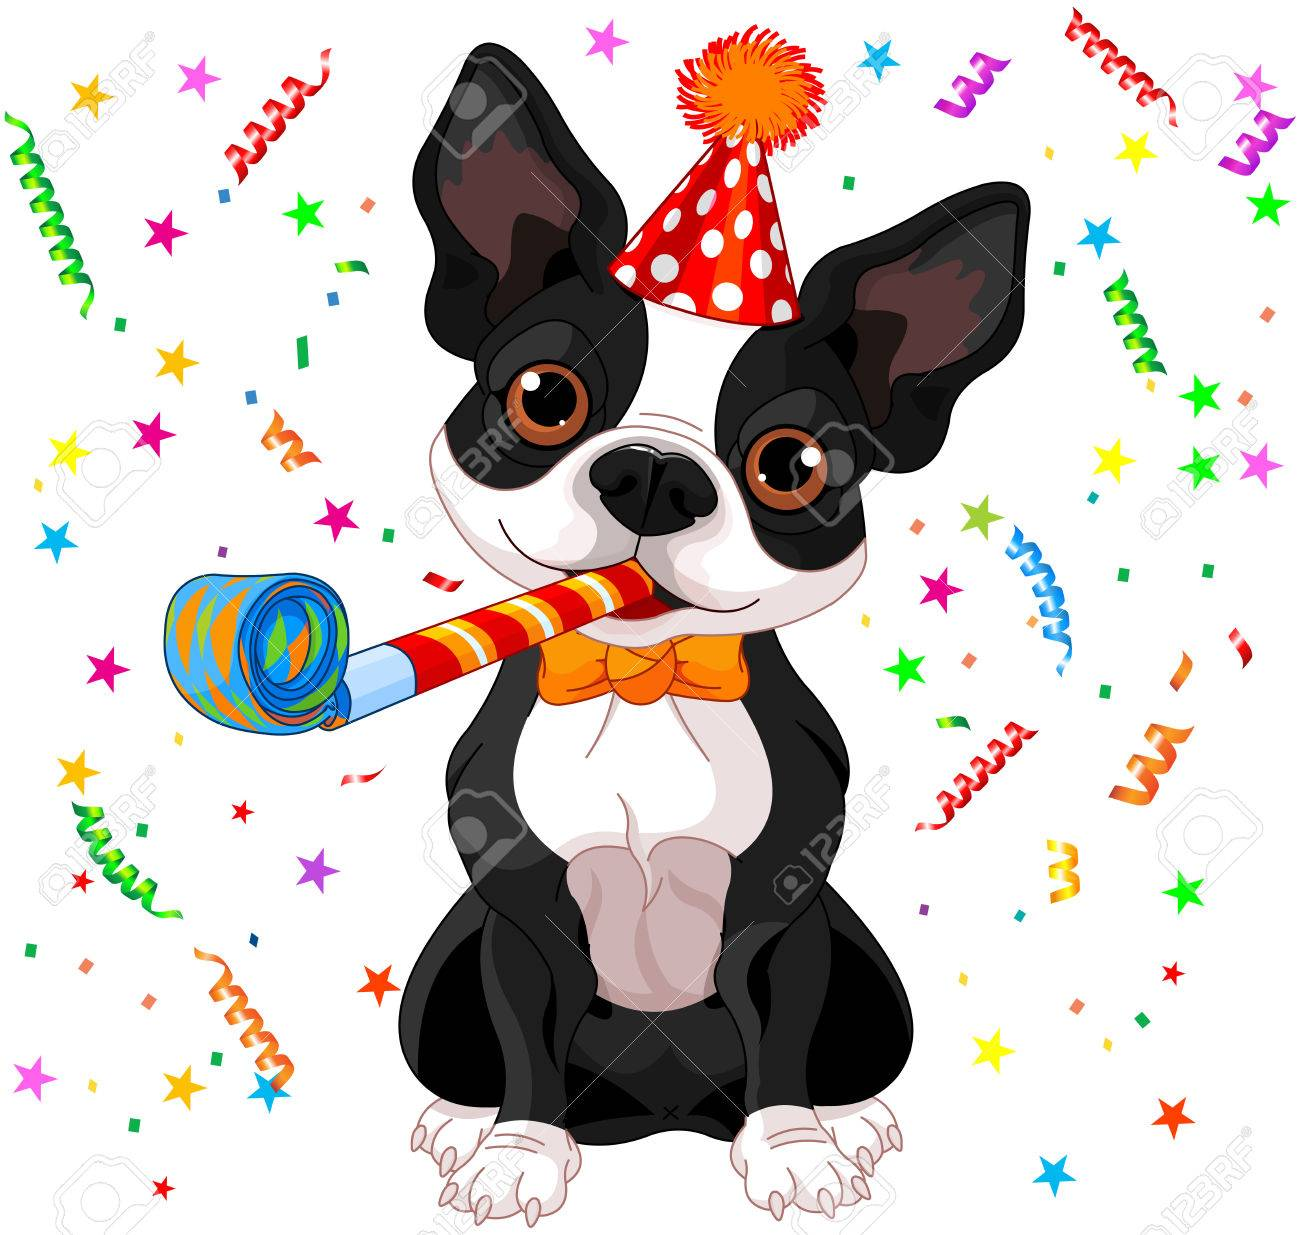 Les chiens comprennent réellement les phrases de 2 mots - Page 2 35588778-illustration-of-cute-boston-terrier-celebrating